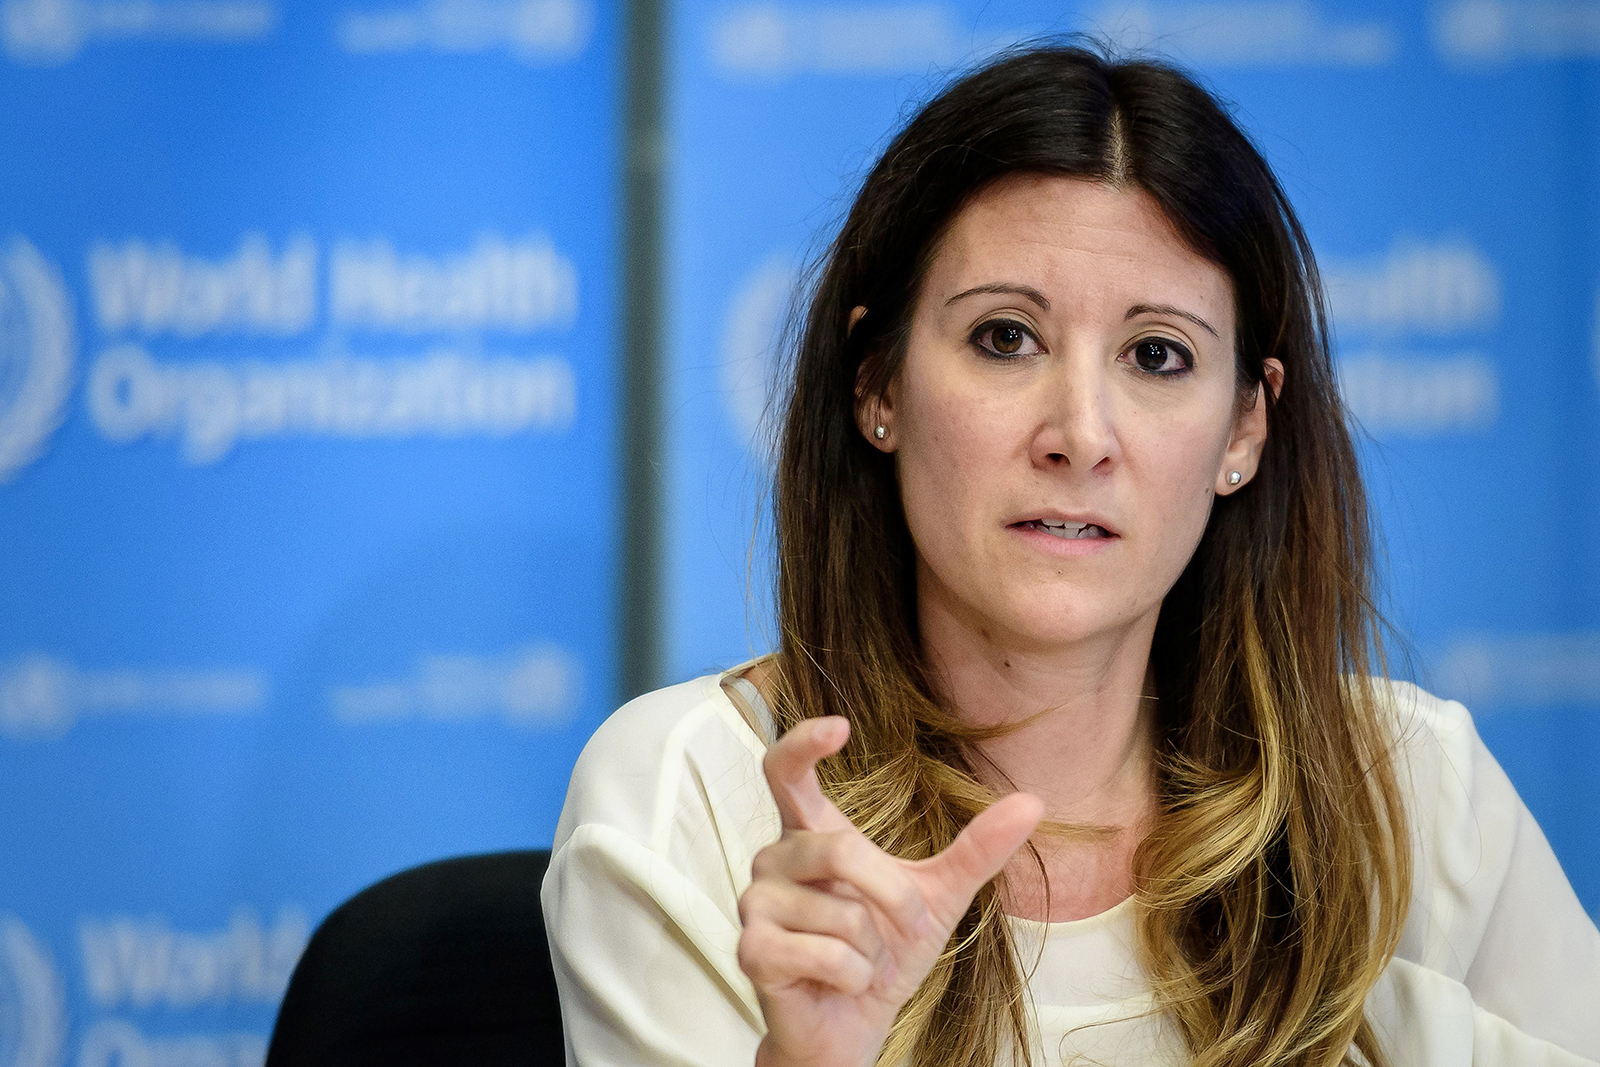 World Health Organization (WHO) Technical Lead Maria Van Kerkhove speaks during a daily press briefing at the WHO headquaters in Geneva, Switzerland on March 9.